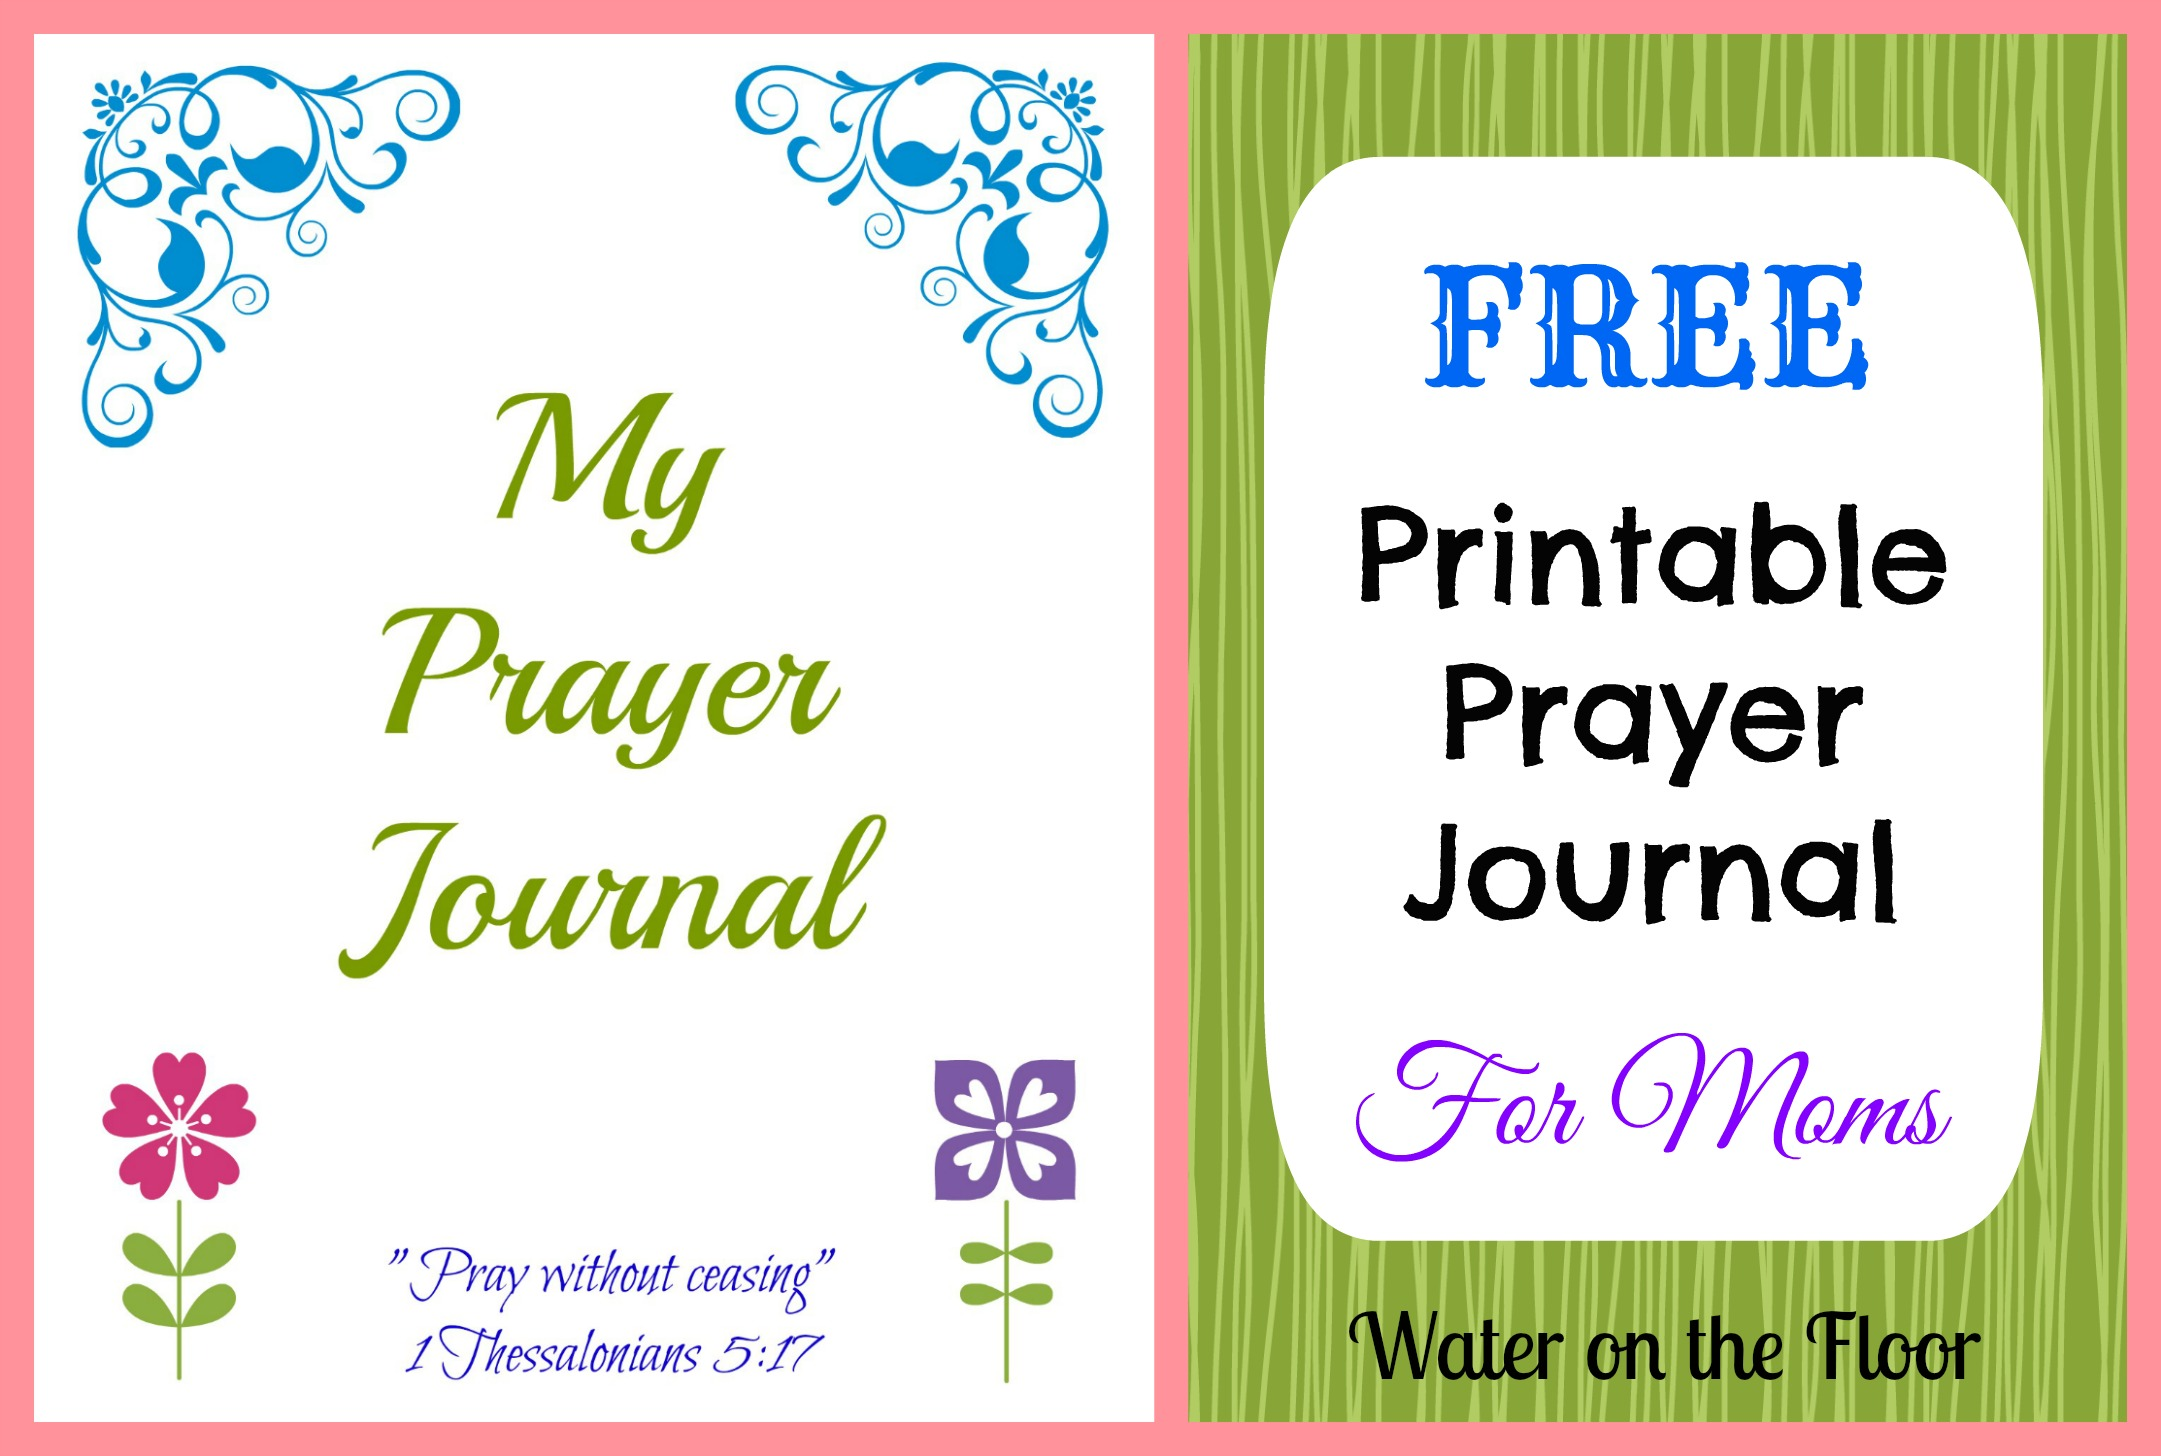 Slobbery image within free printable prayer journal